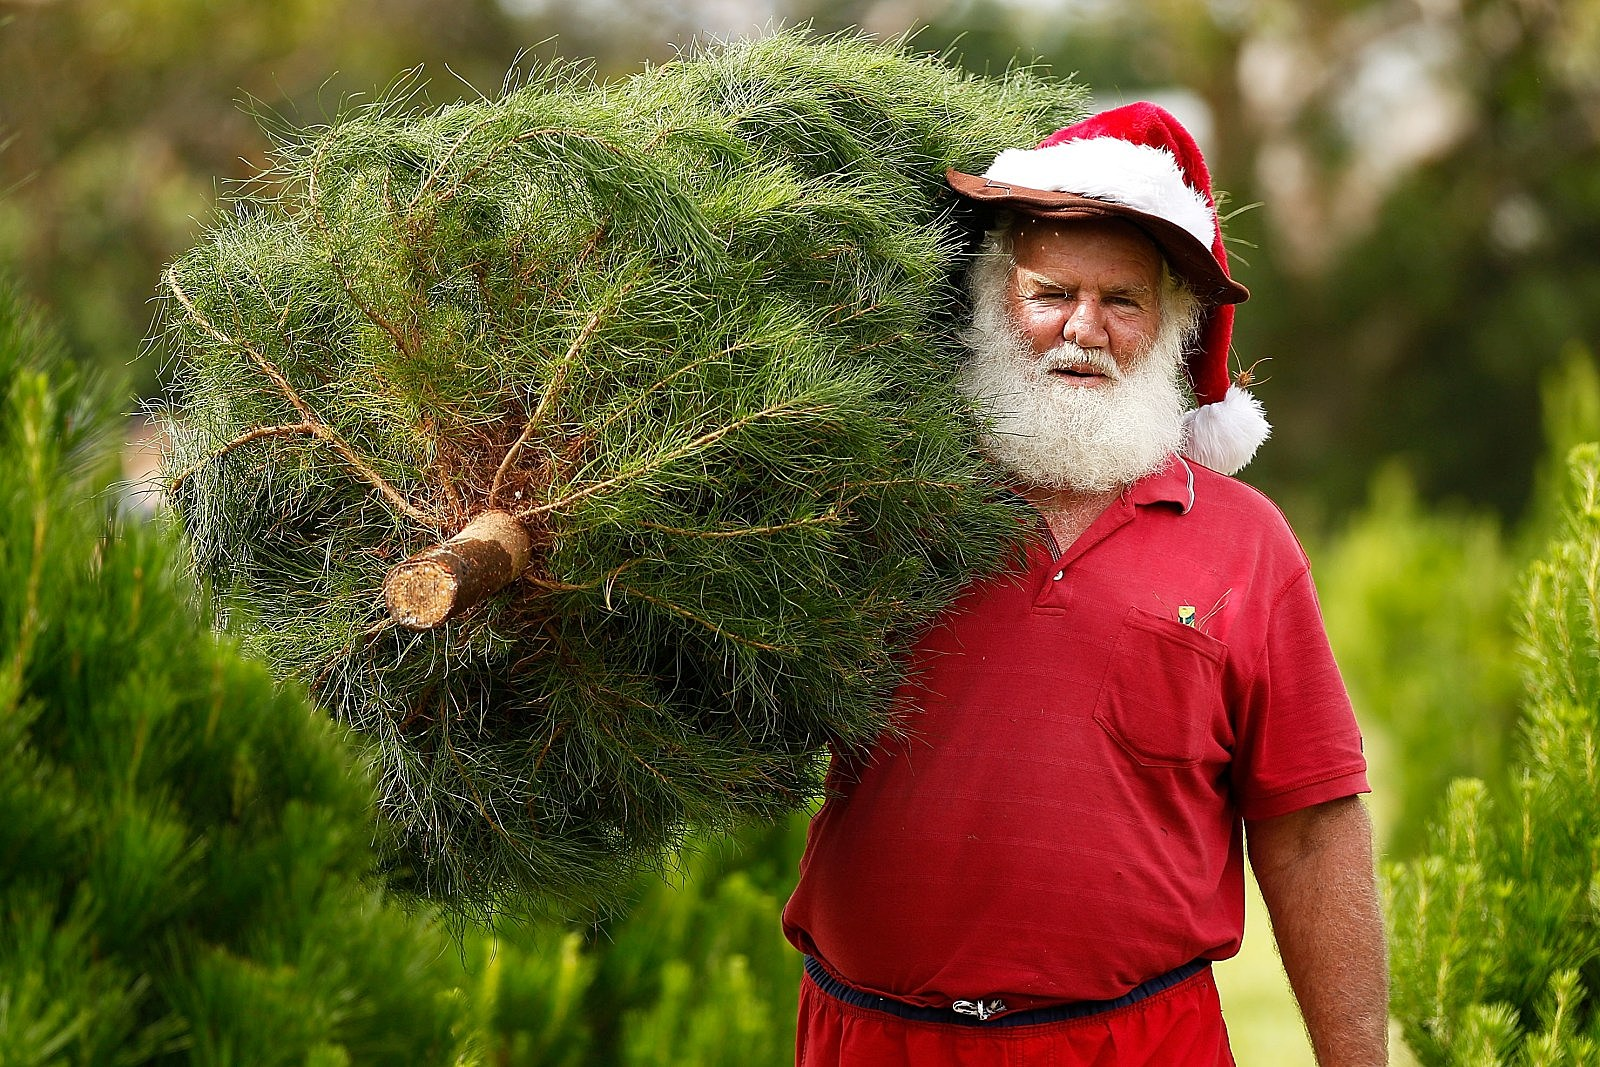 Man Dressed as Santa with Fresh Cut Christmas Tree